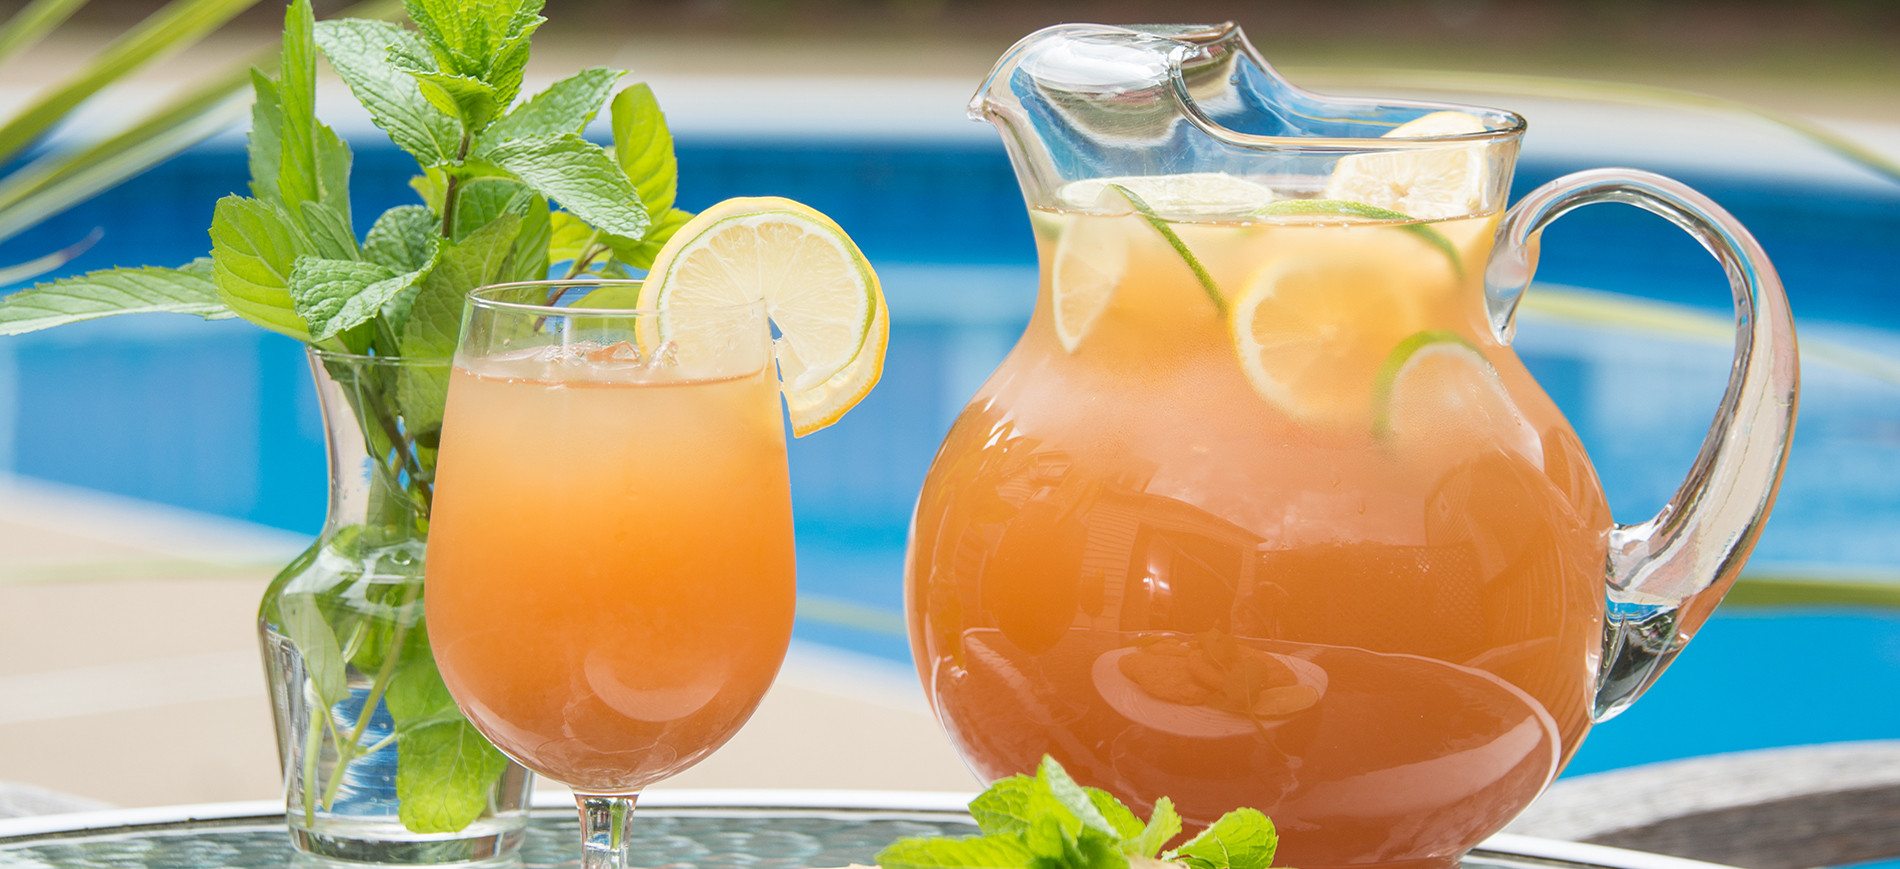 Iced tea pitcher and glass with pool in background